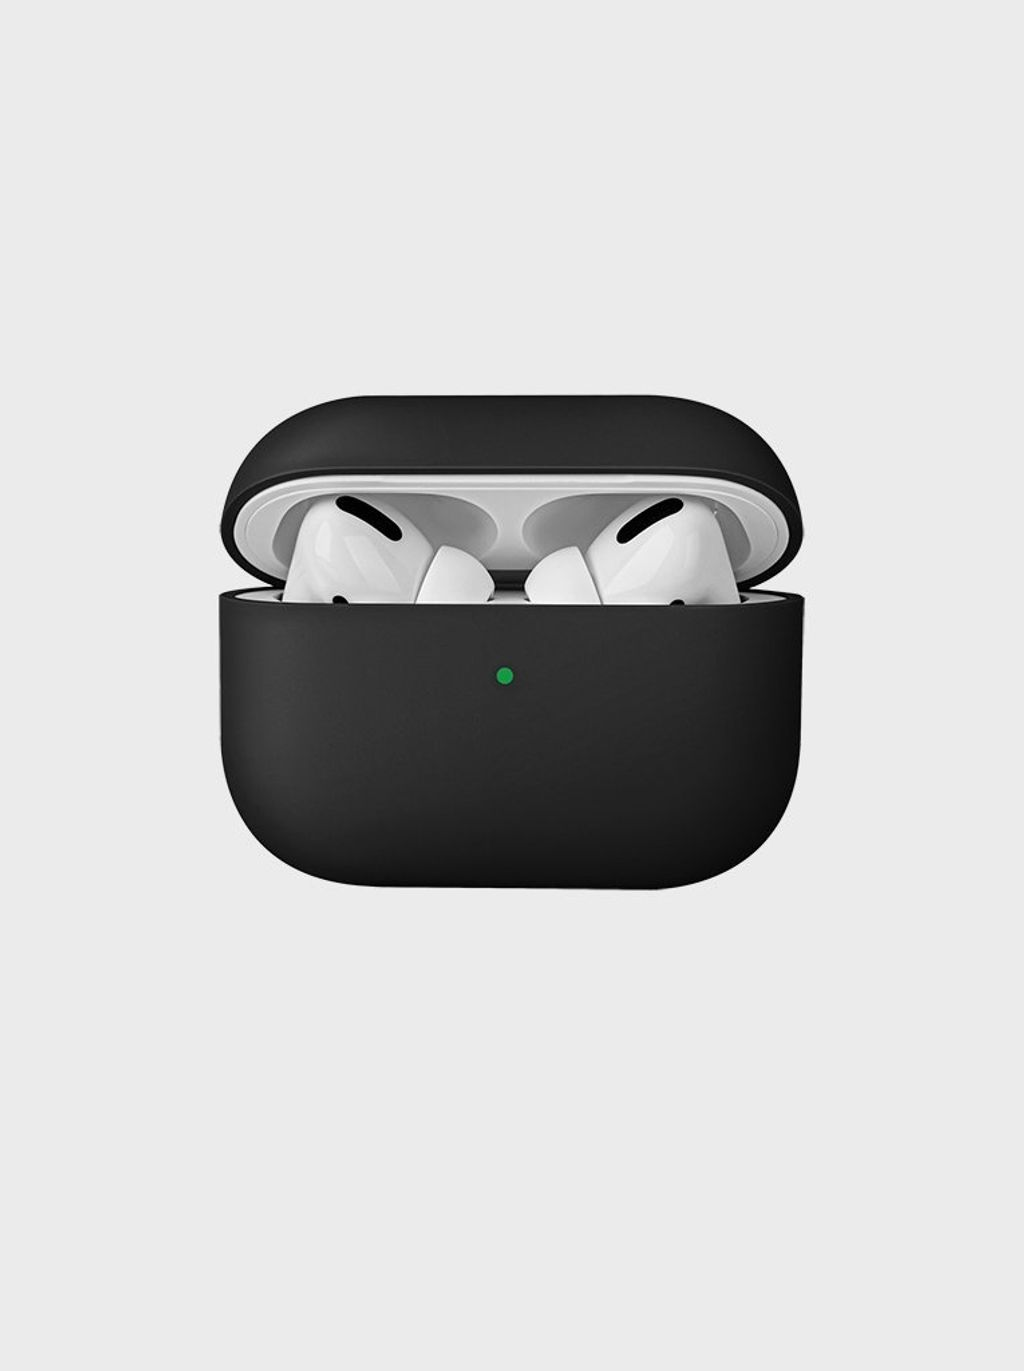 Lino_AirPods-Ink-01_Low_res_SG_1024x1024.jpg